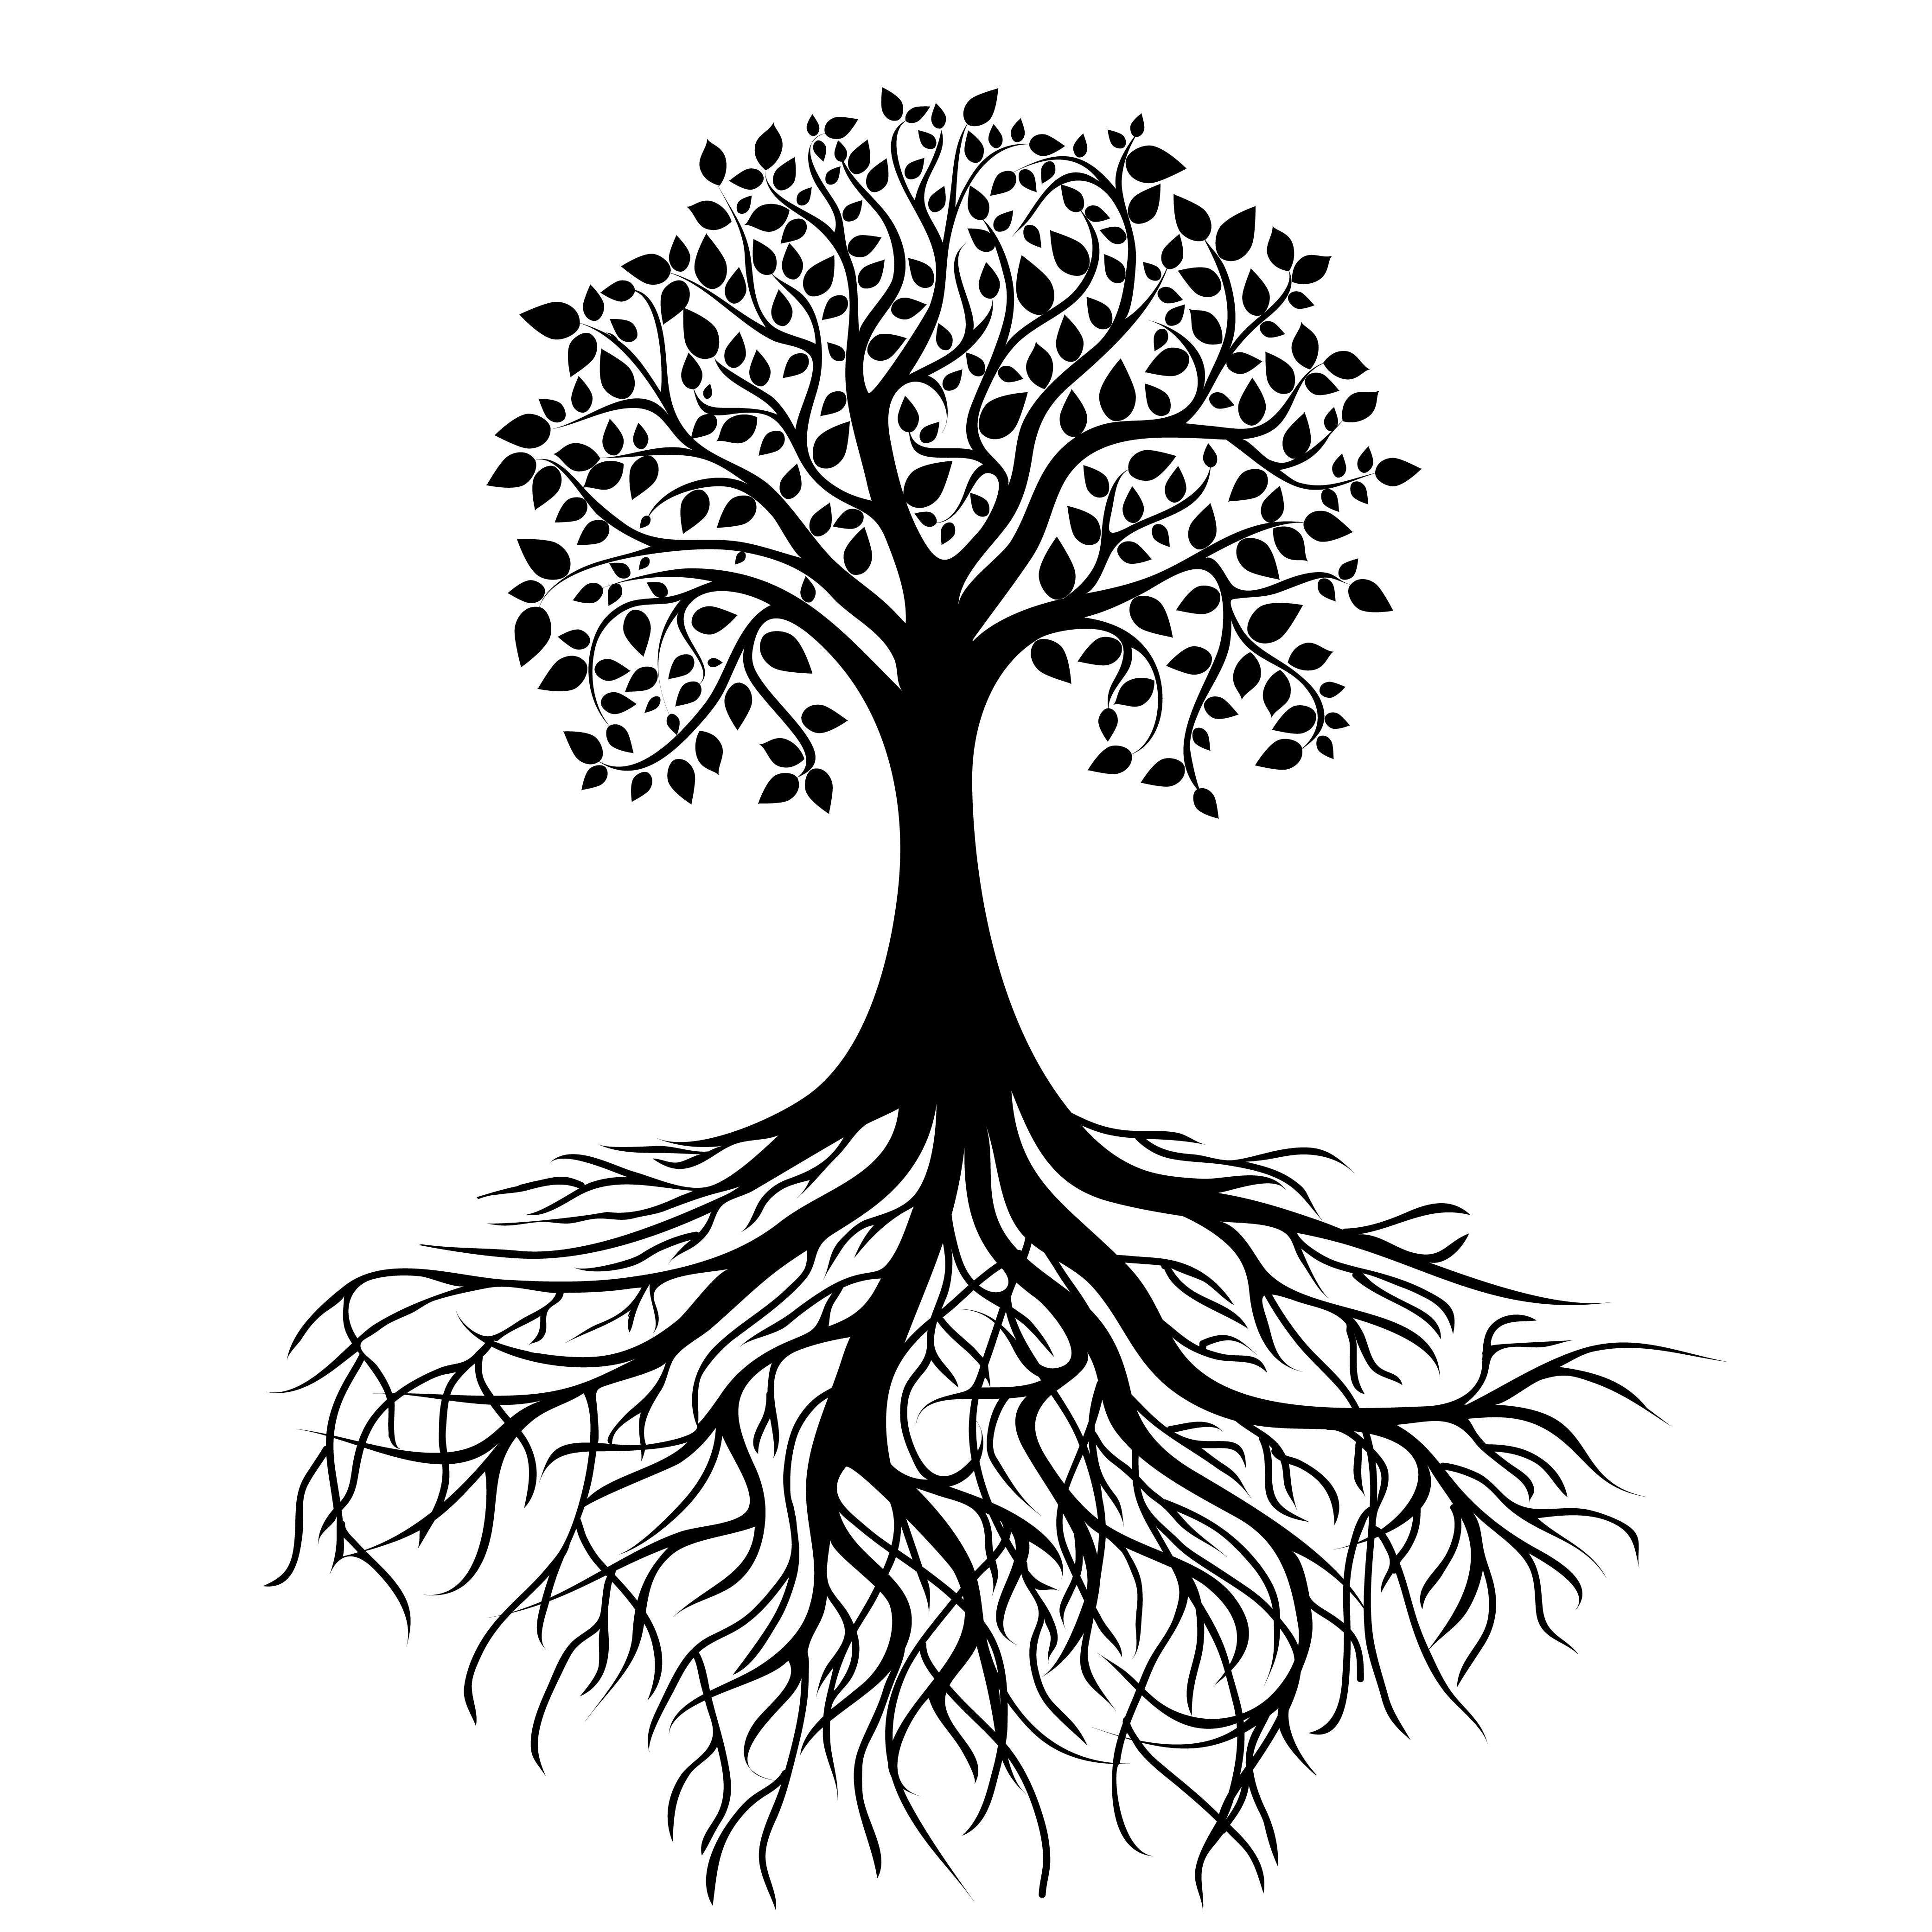 Black and white tree with leaves and roots clipart banner library library Black And White Tree Tattoos Clipart | Free download best Black And ... banner library library